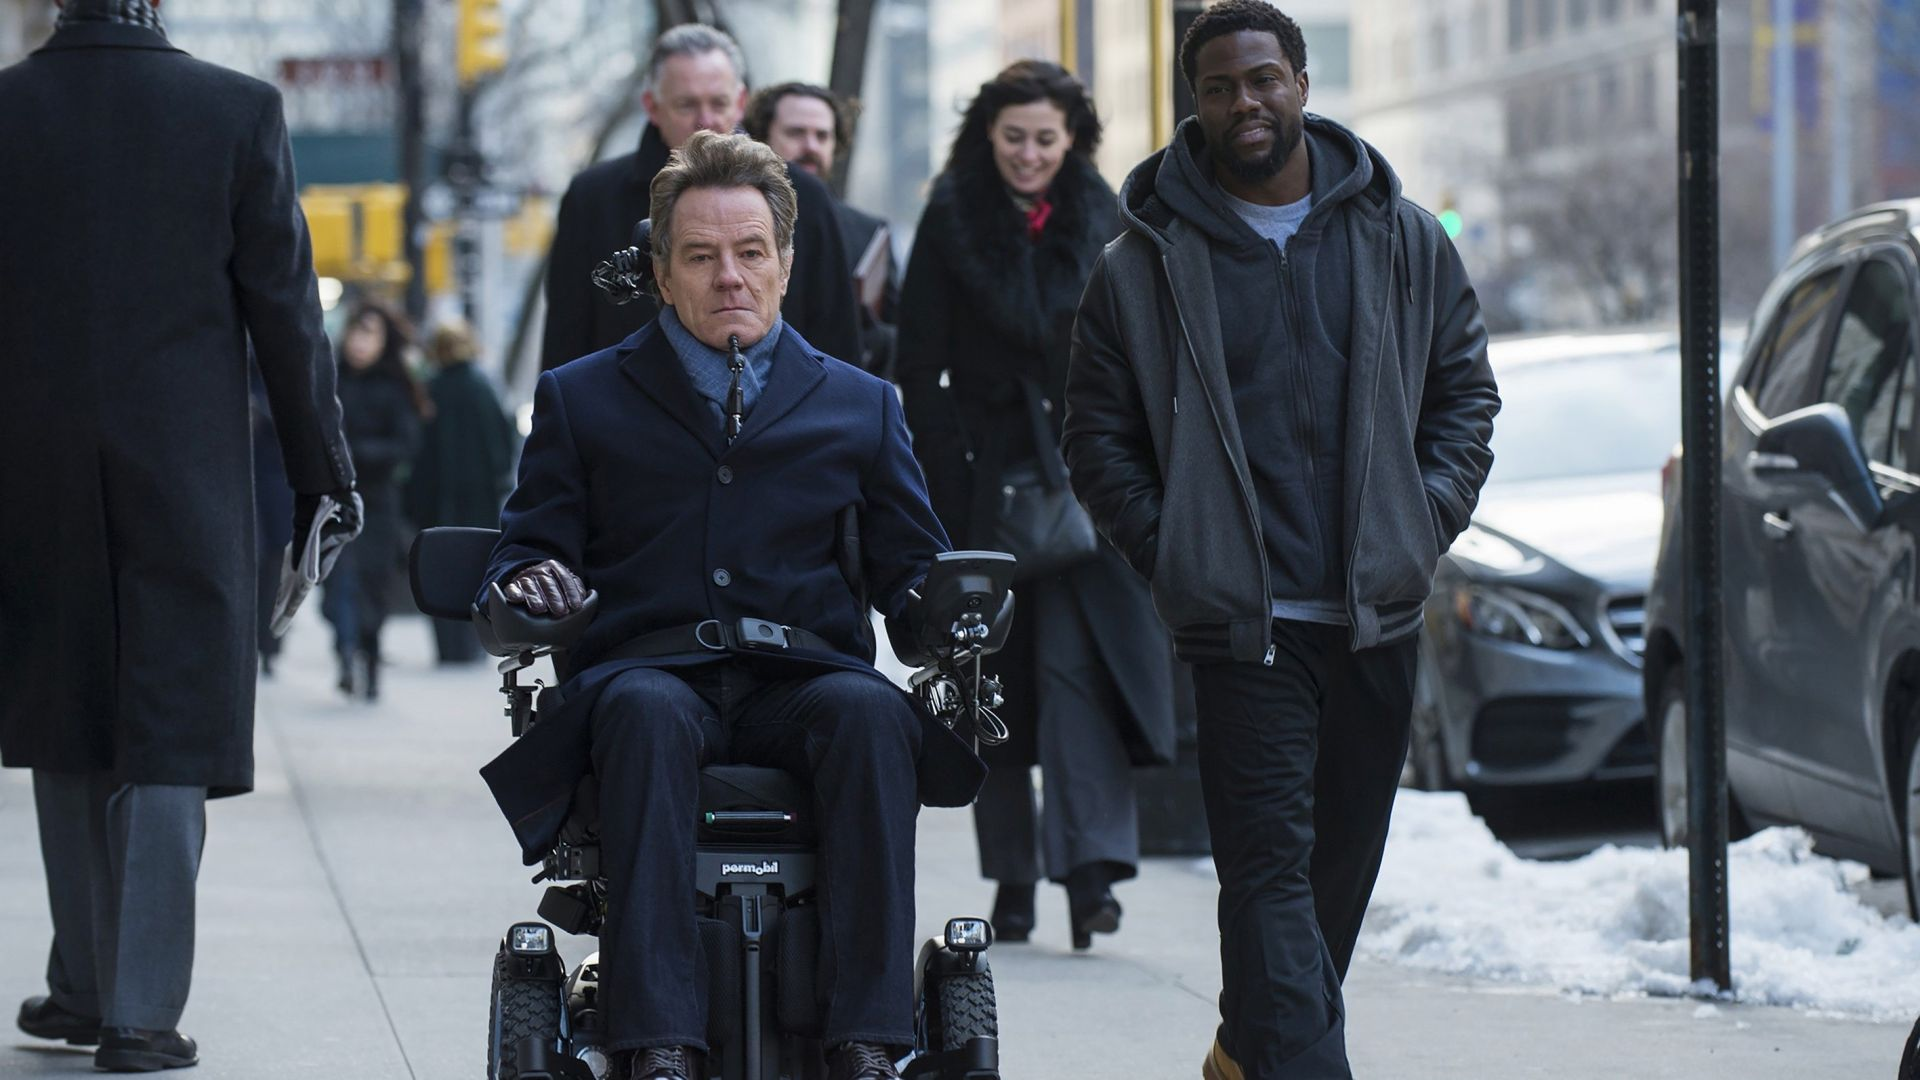 1+1: Голливудская история, The Upside, Kevin Hart, Bryan Cranston, HD (horizontal)